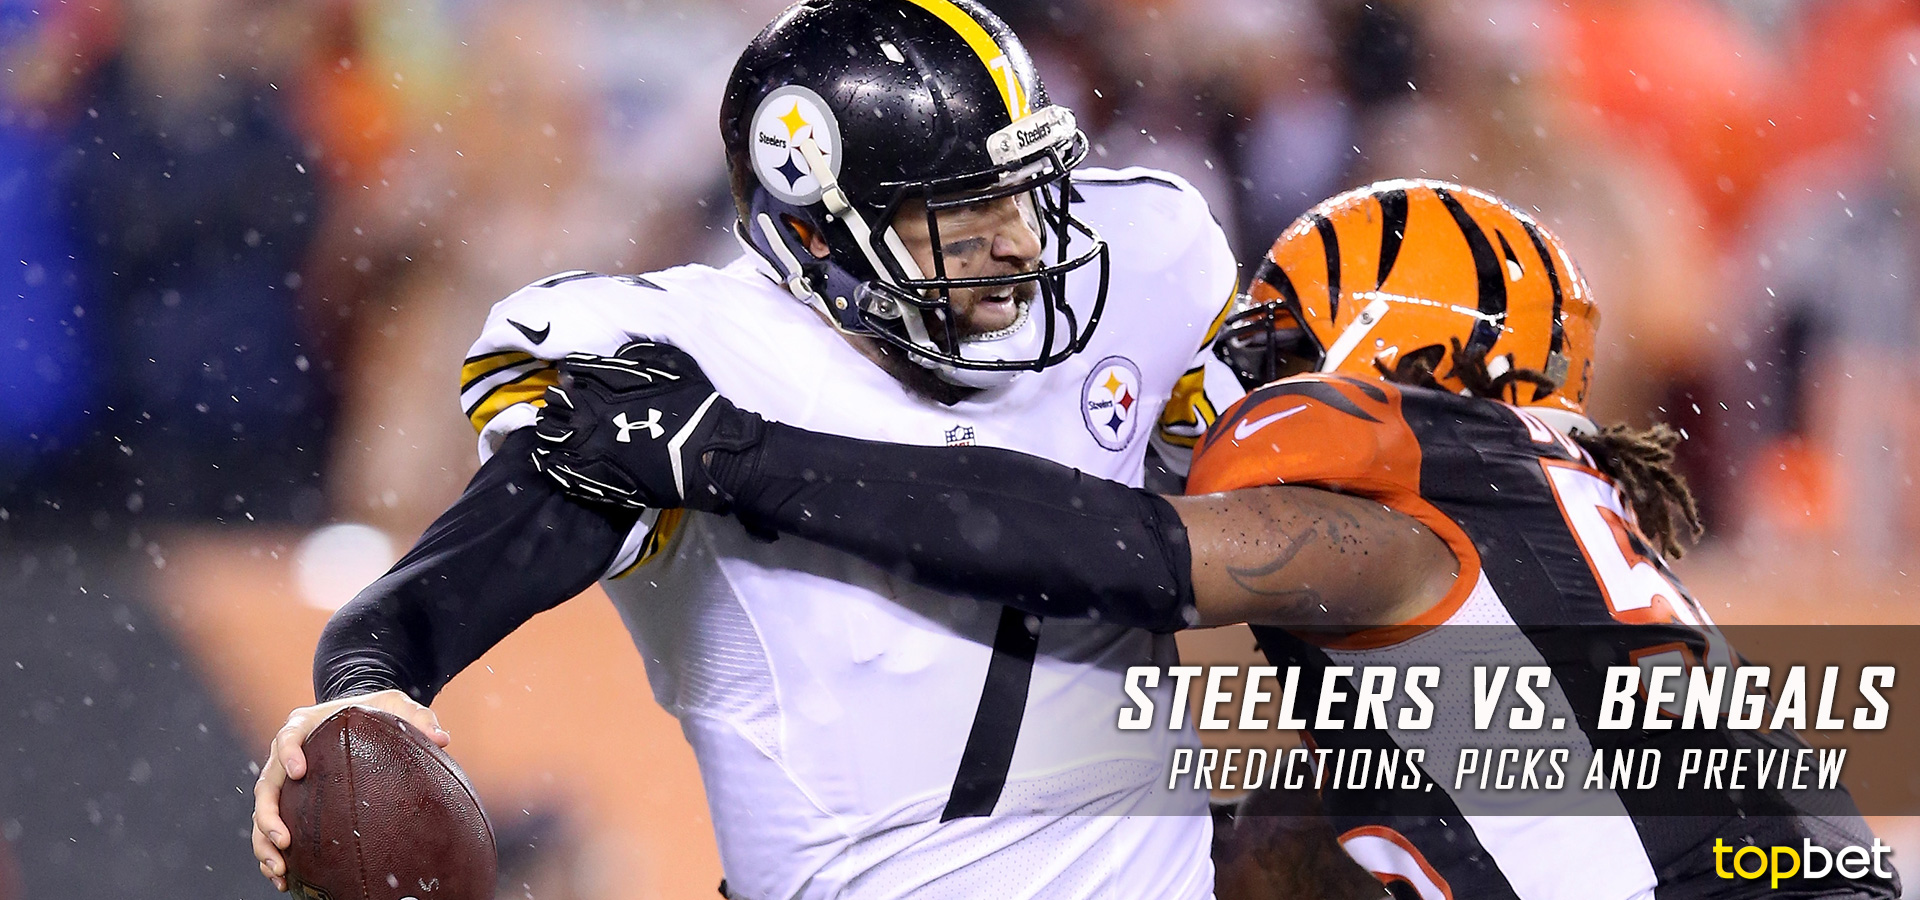 Pittsburgh Steelers Vs Cincinnati Bengals Predictions And Picks